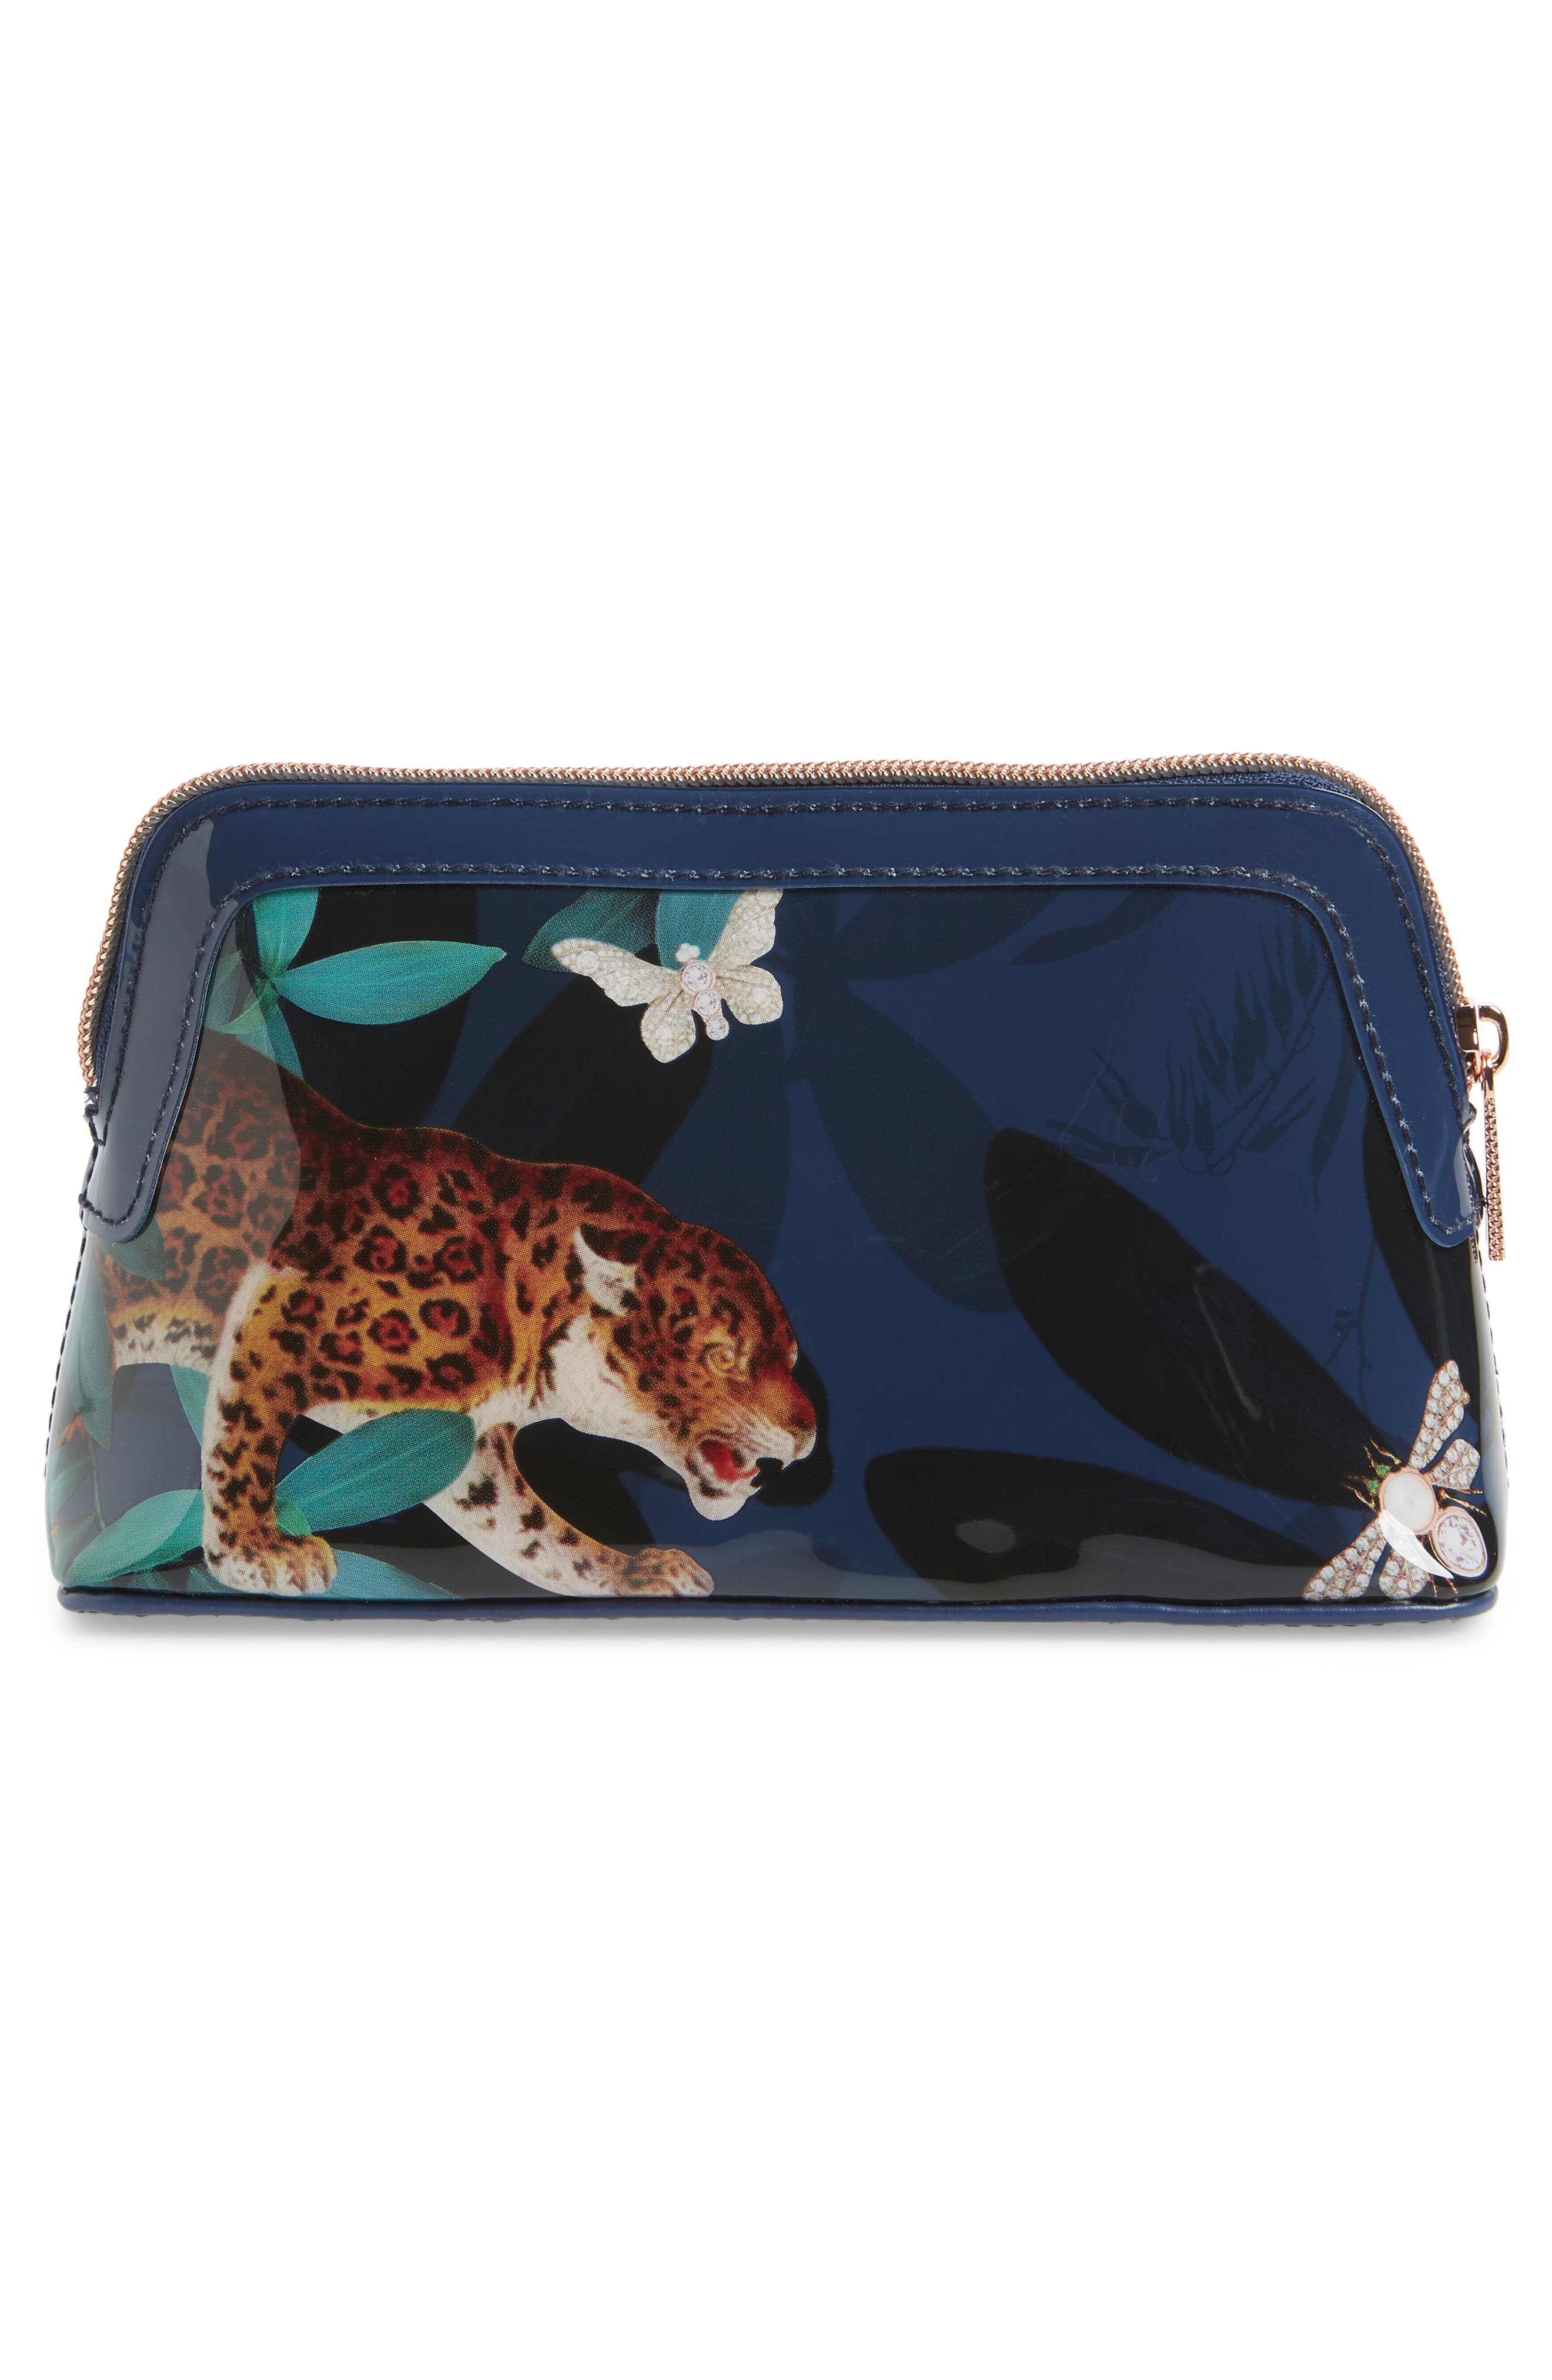 Libert Houdini Cosmetics Case,                             Alternate thumbnail 2, color,                             NAVY